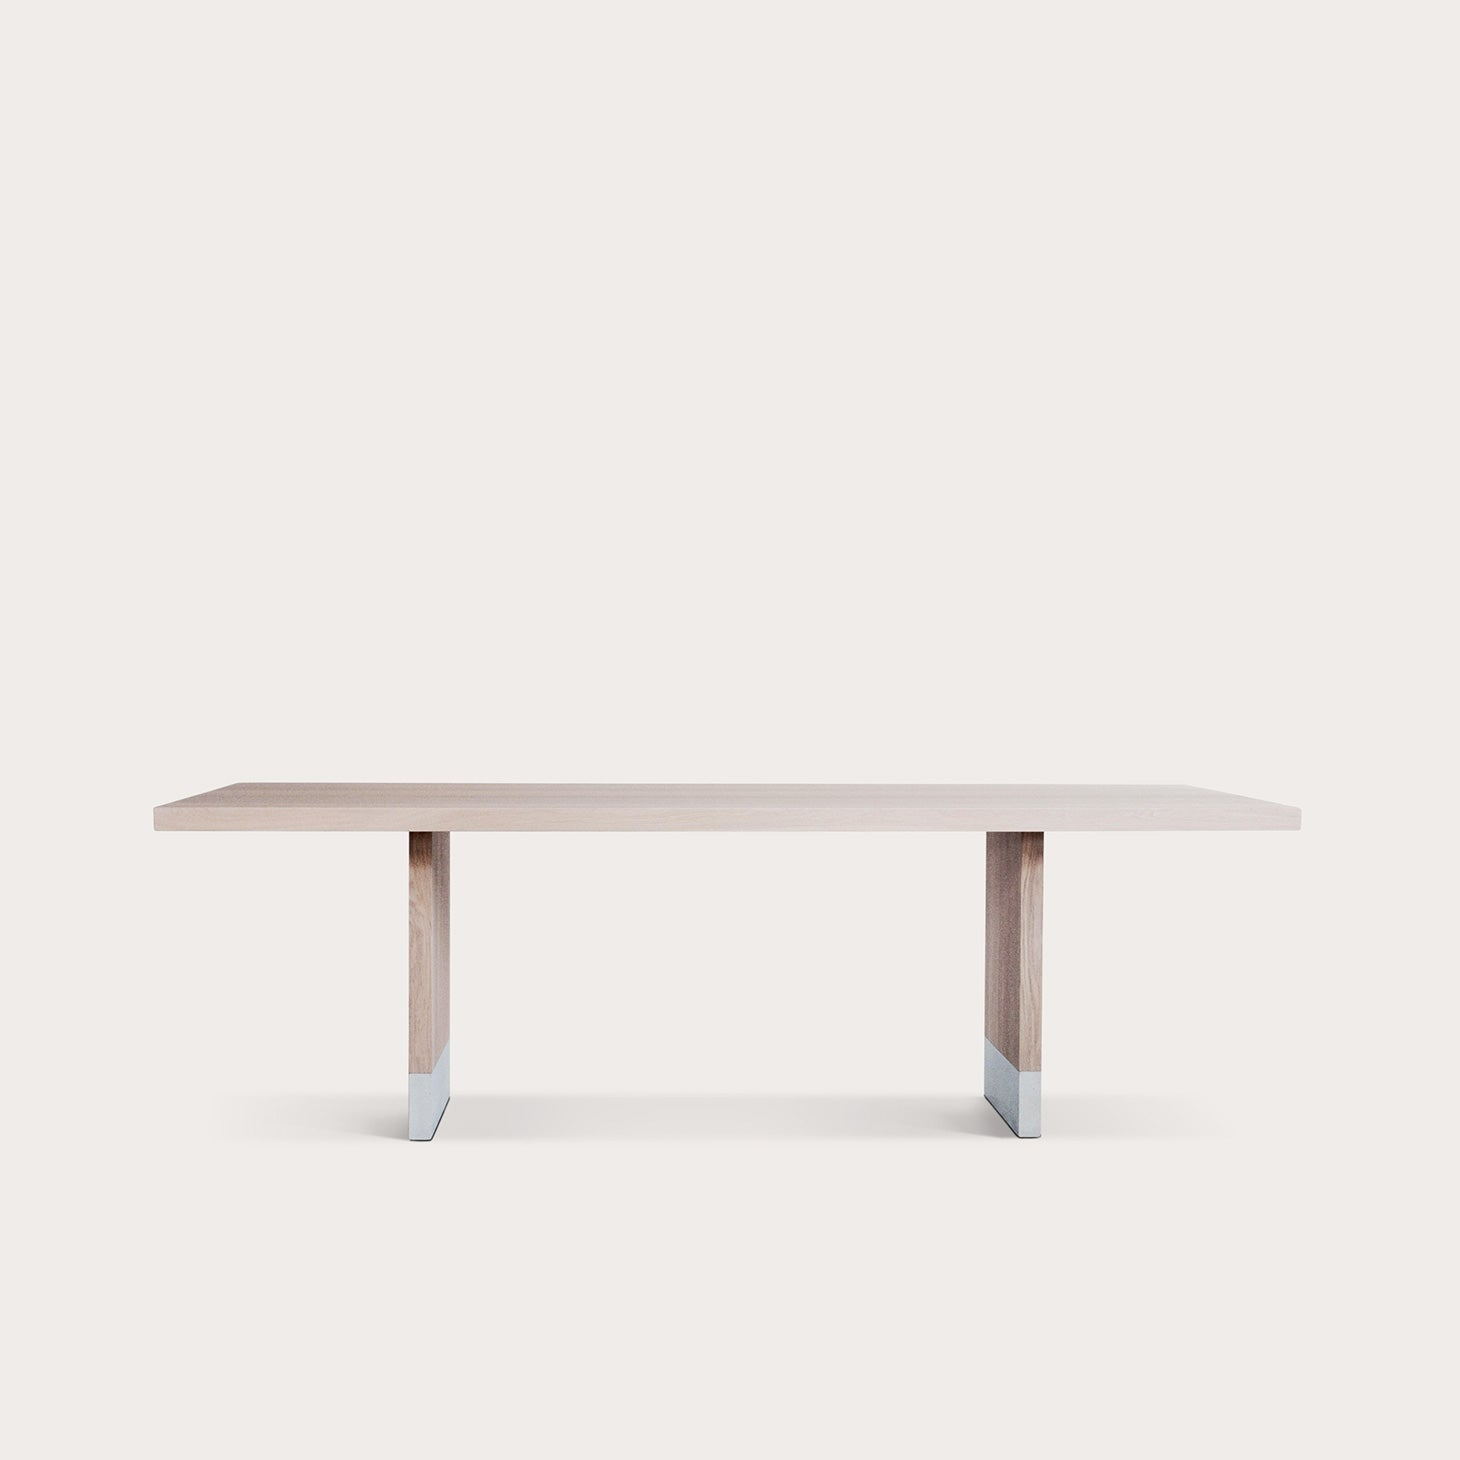 Common Dining Table Tables Marlieke Van Rossum Designer Furniture Sku: 416-230-10194